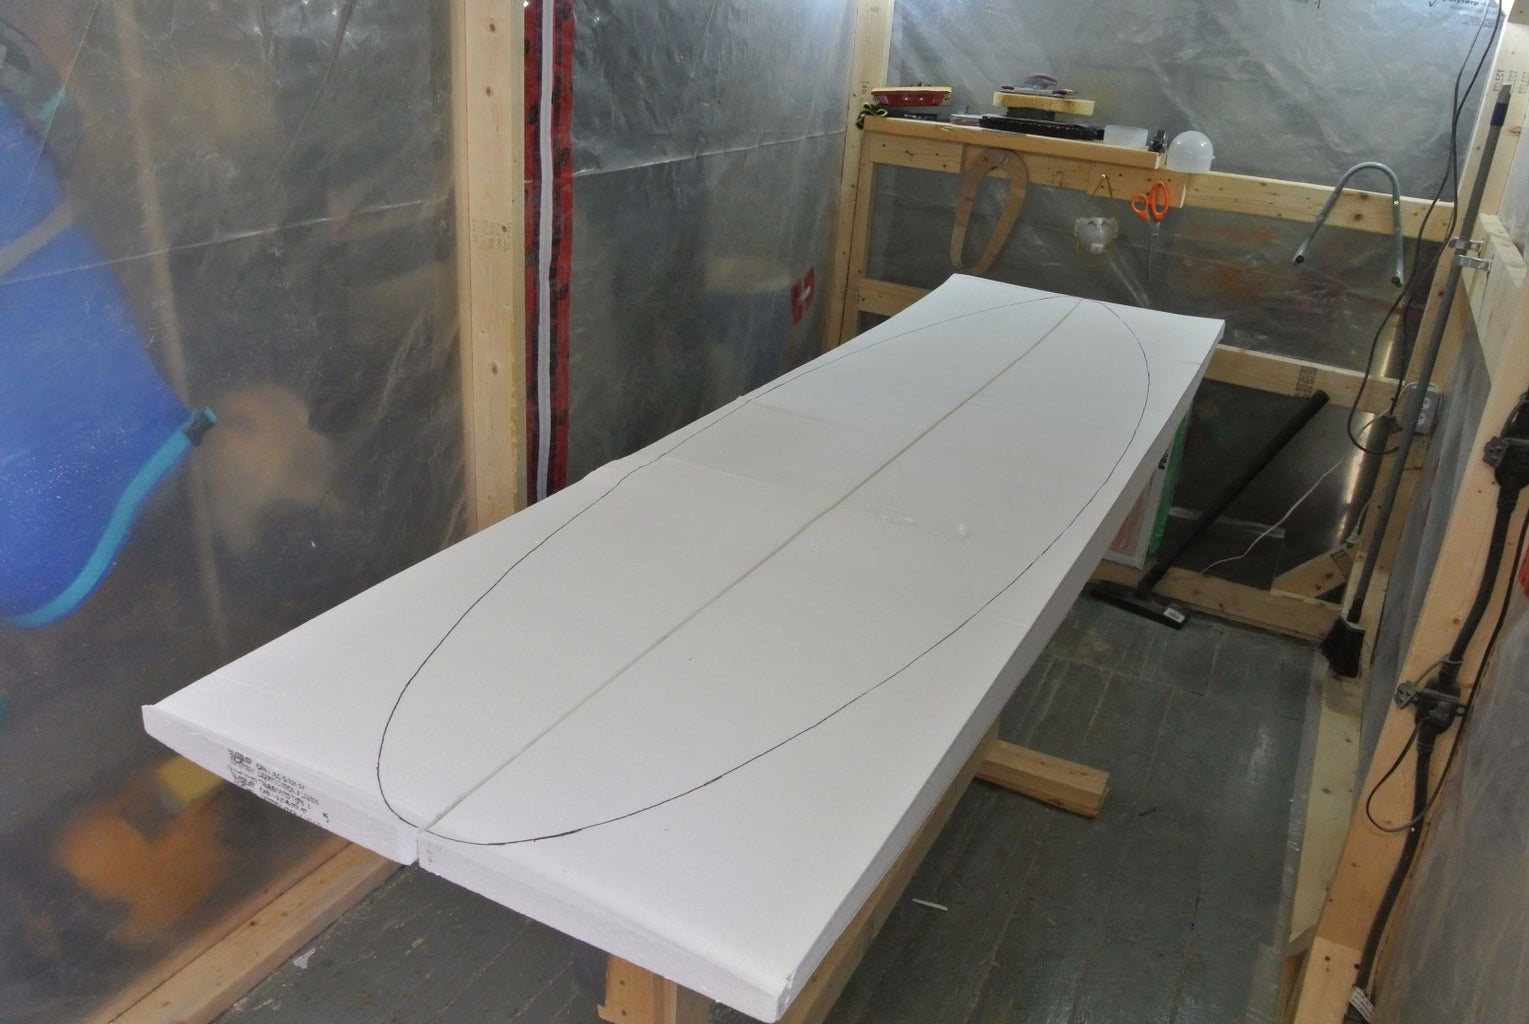 Tracing the Template on the Blank